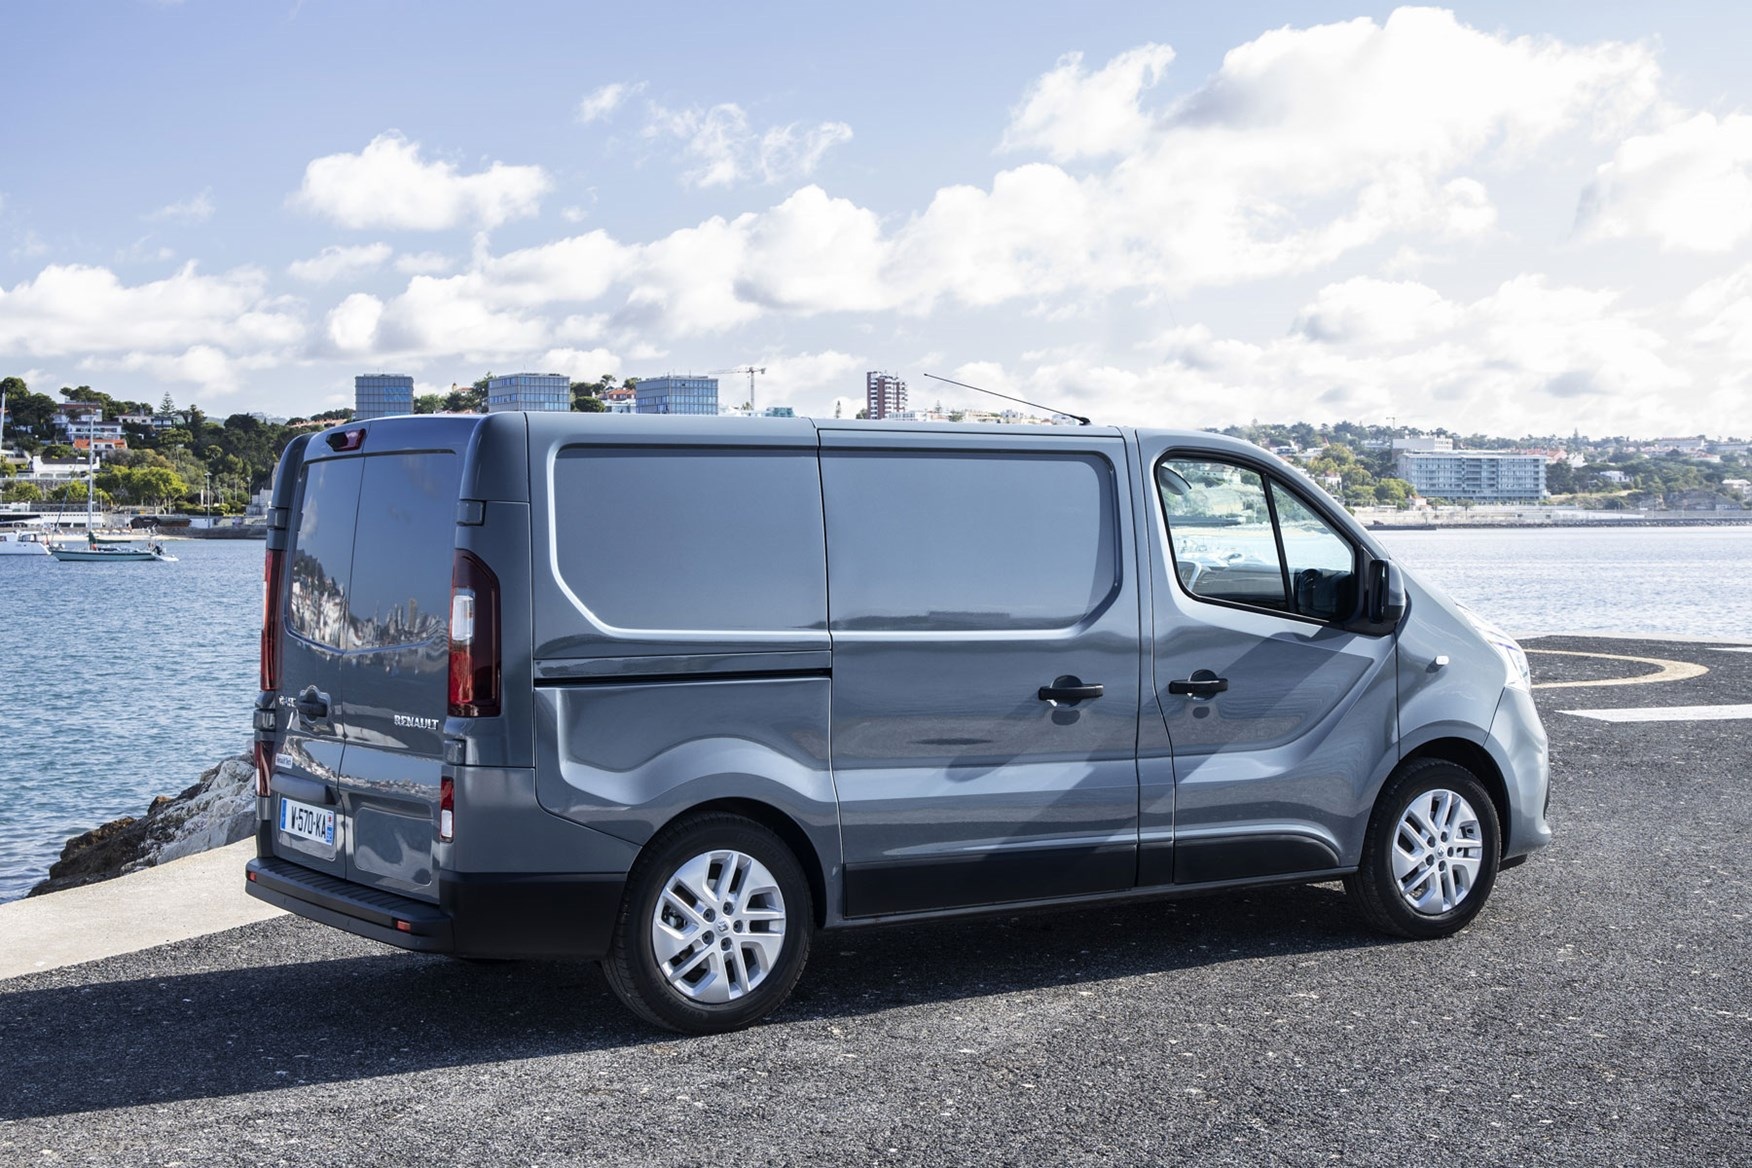 Renault Trafic review - 2019 facelift, rear view, grey